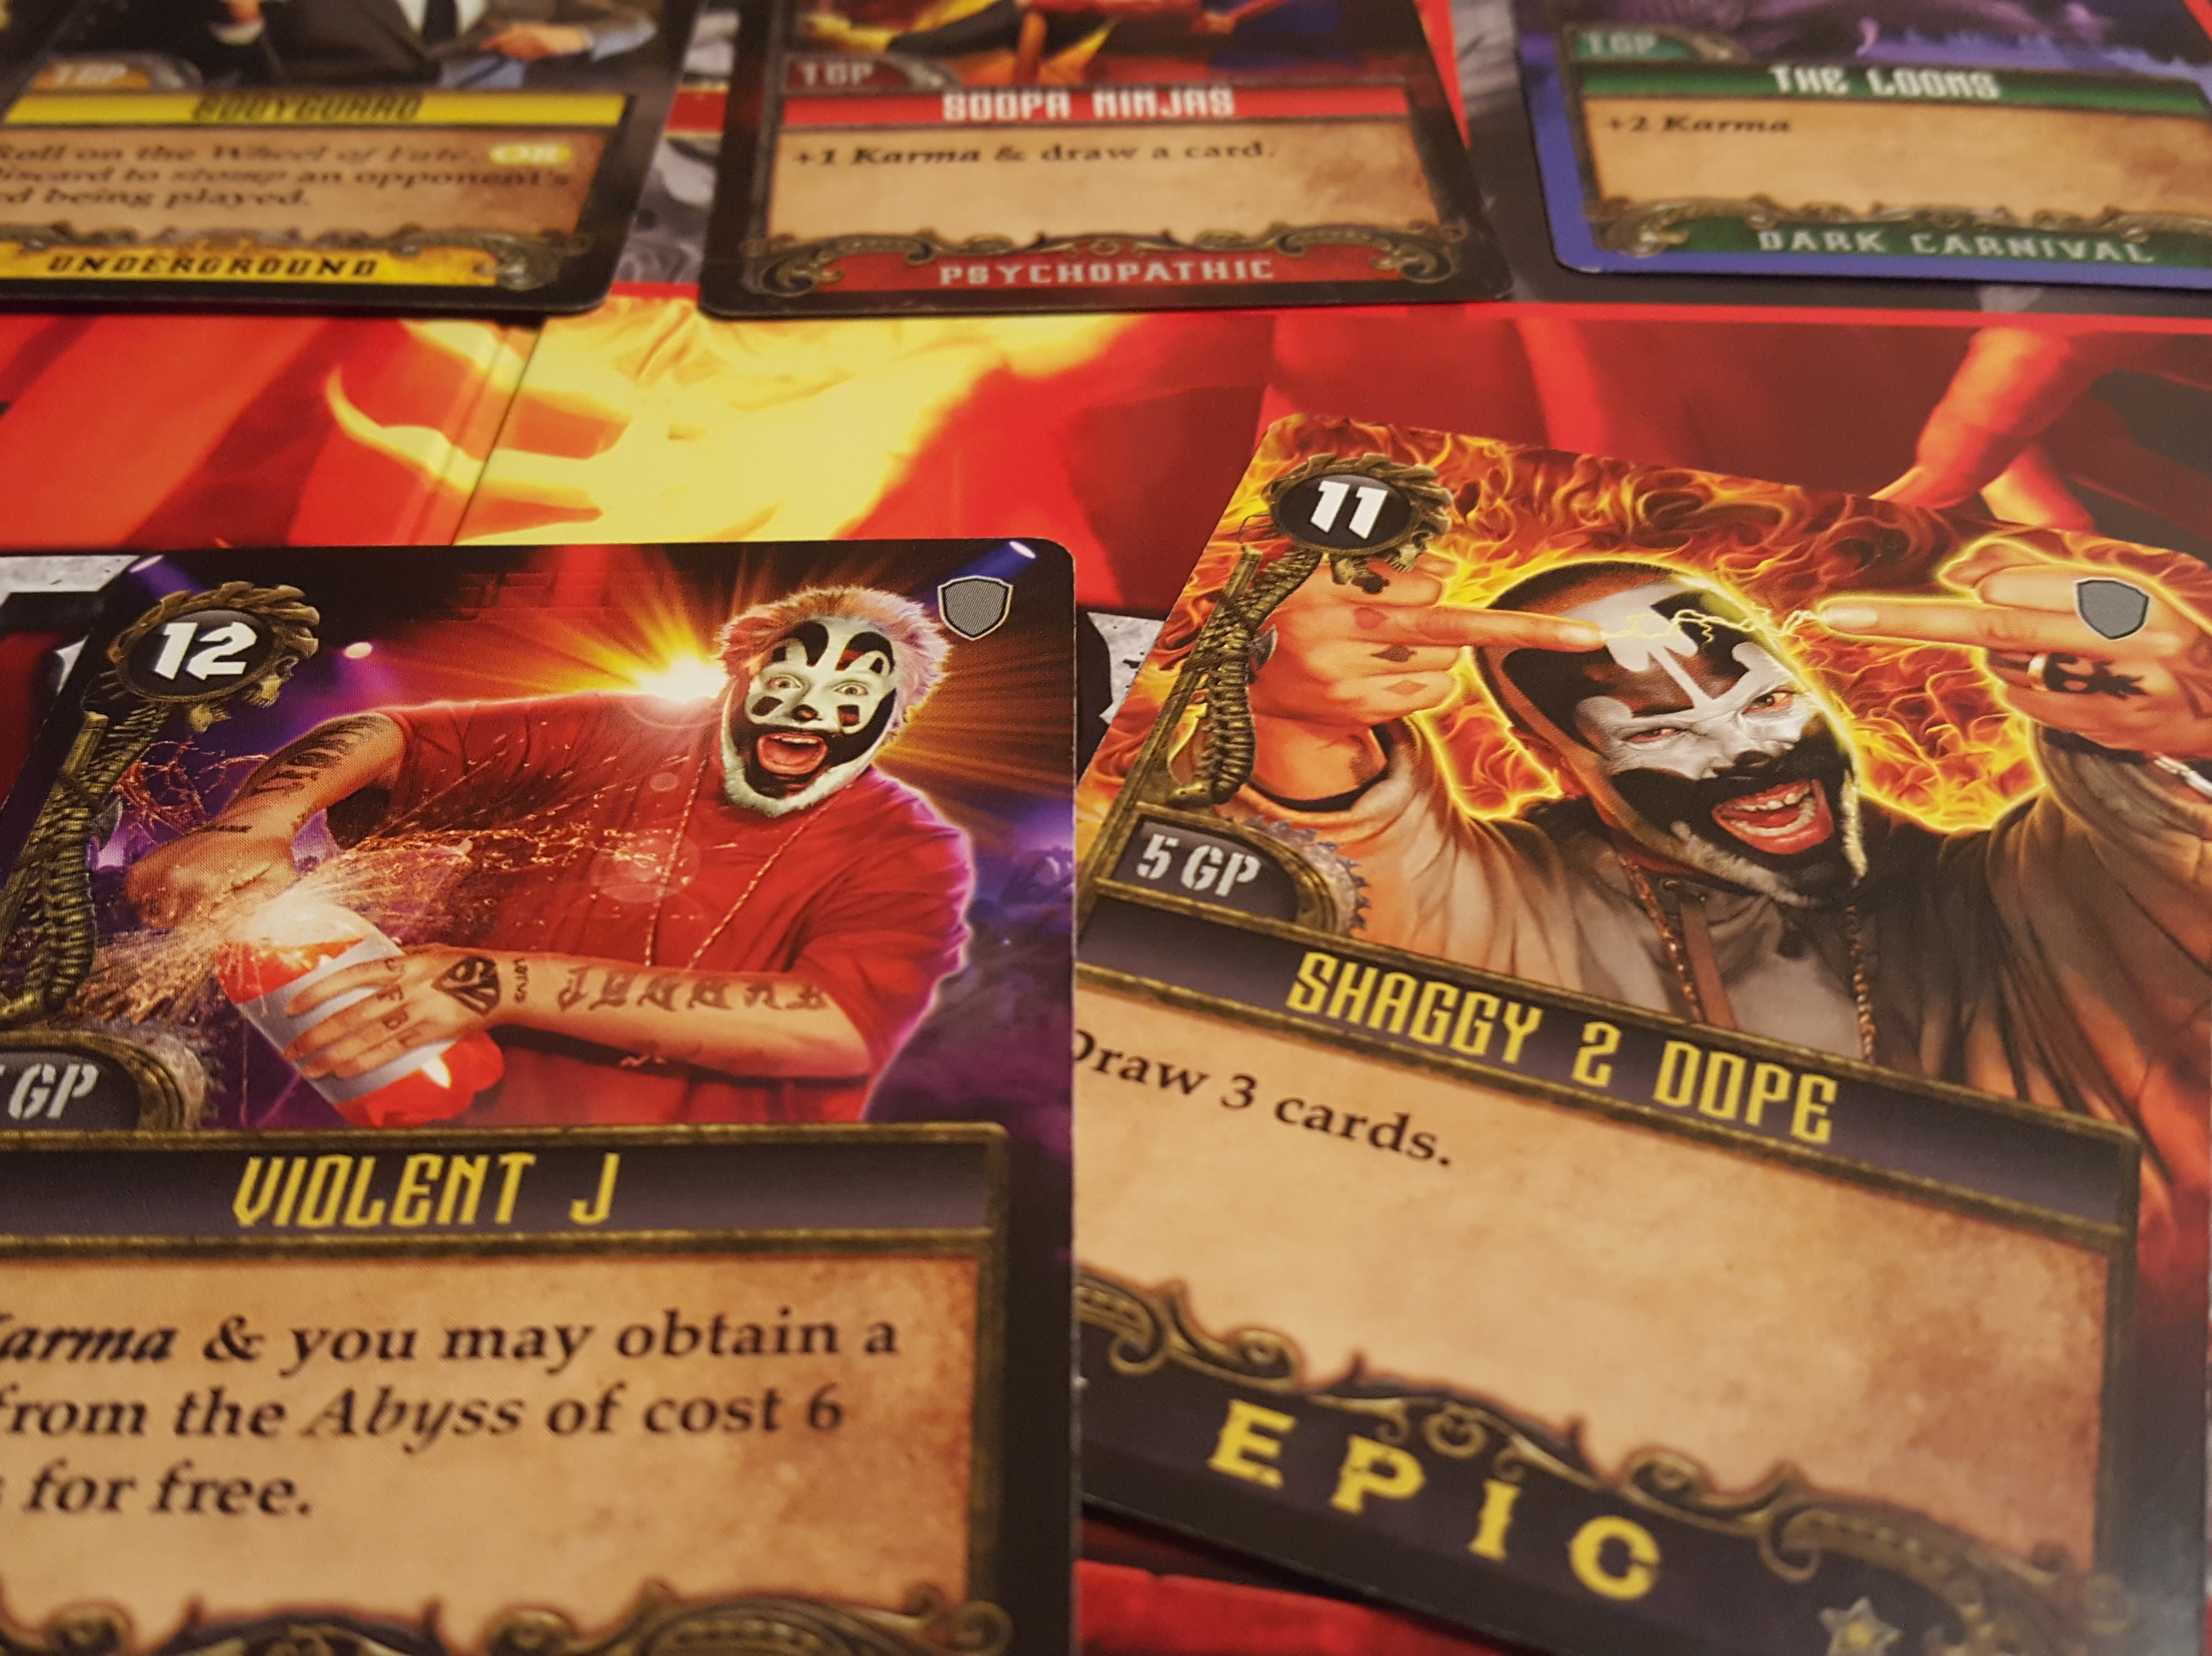 The Best Thing About the Insane Clown Posse Card Game Is That It Exists